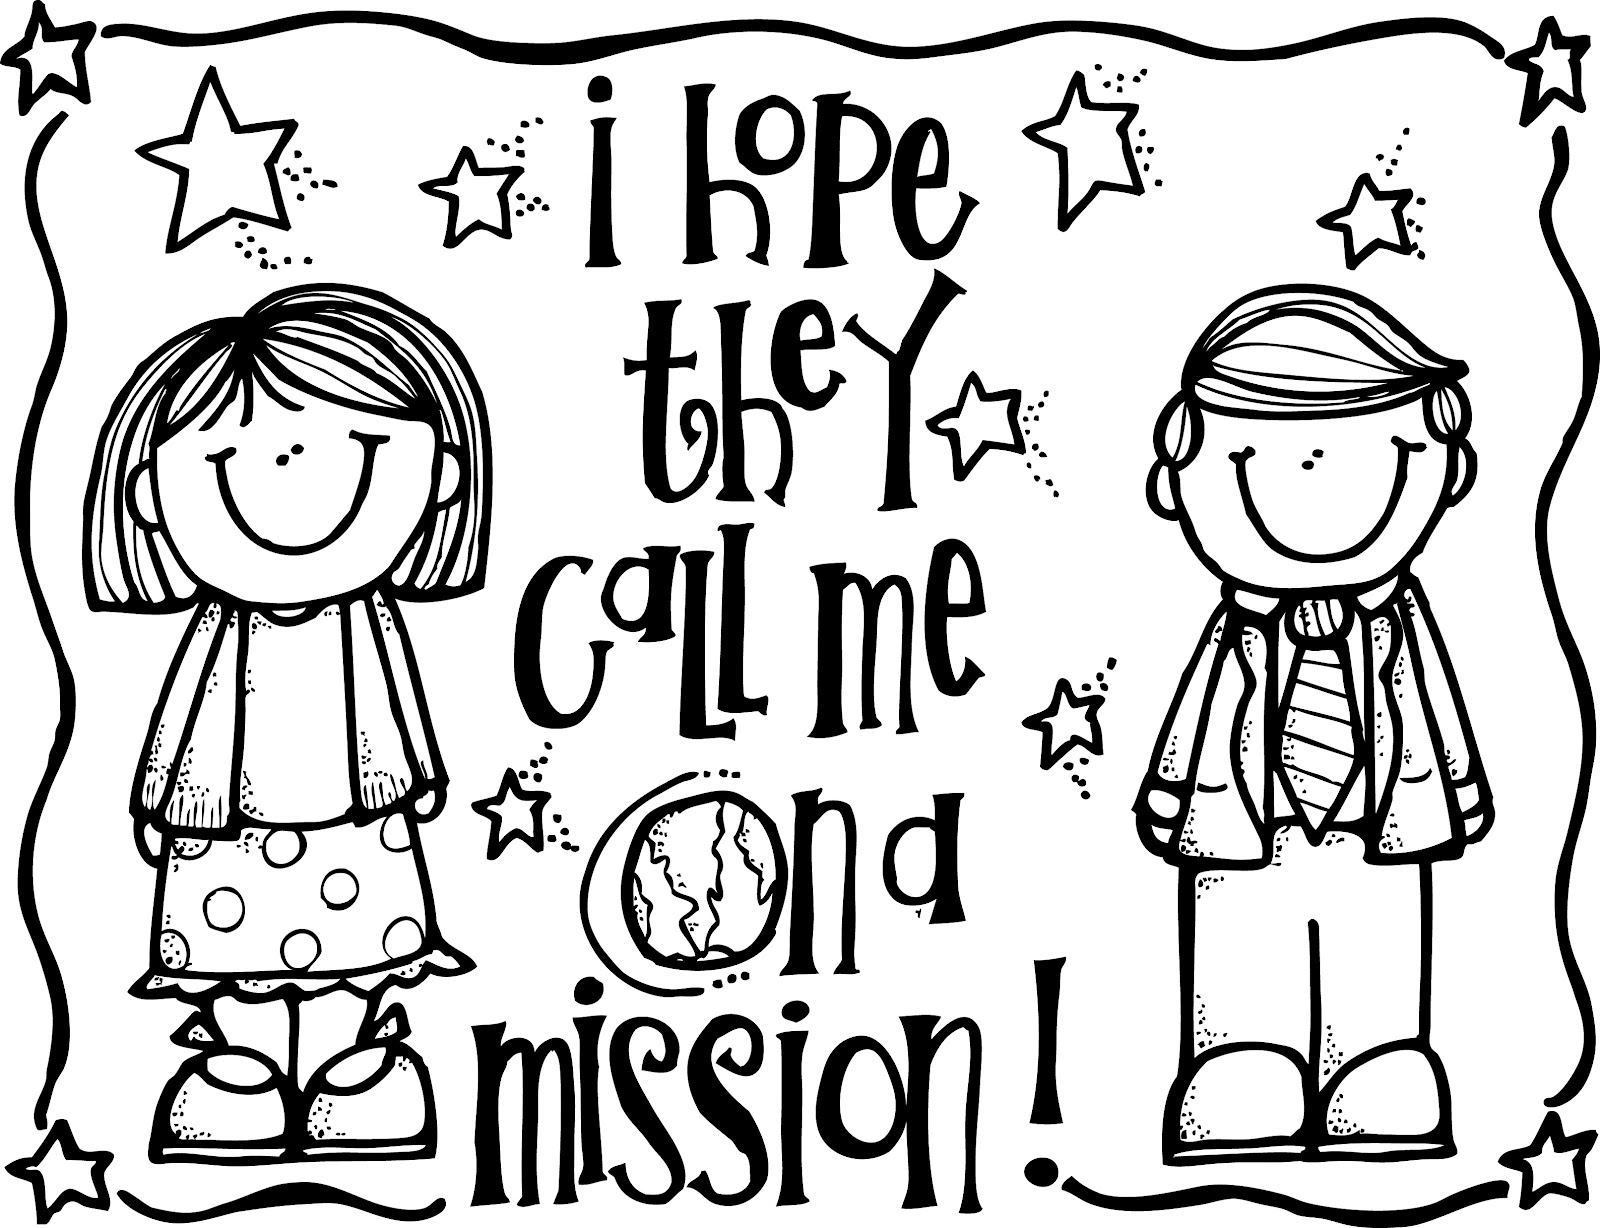 missionaries coloring pages - photo#2